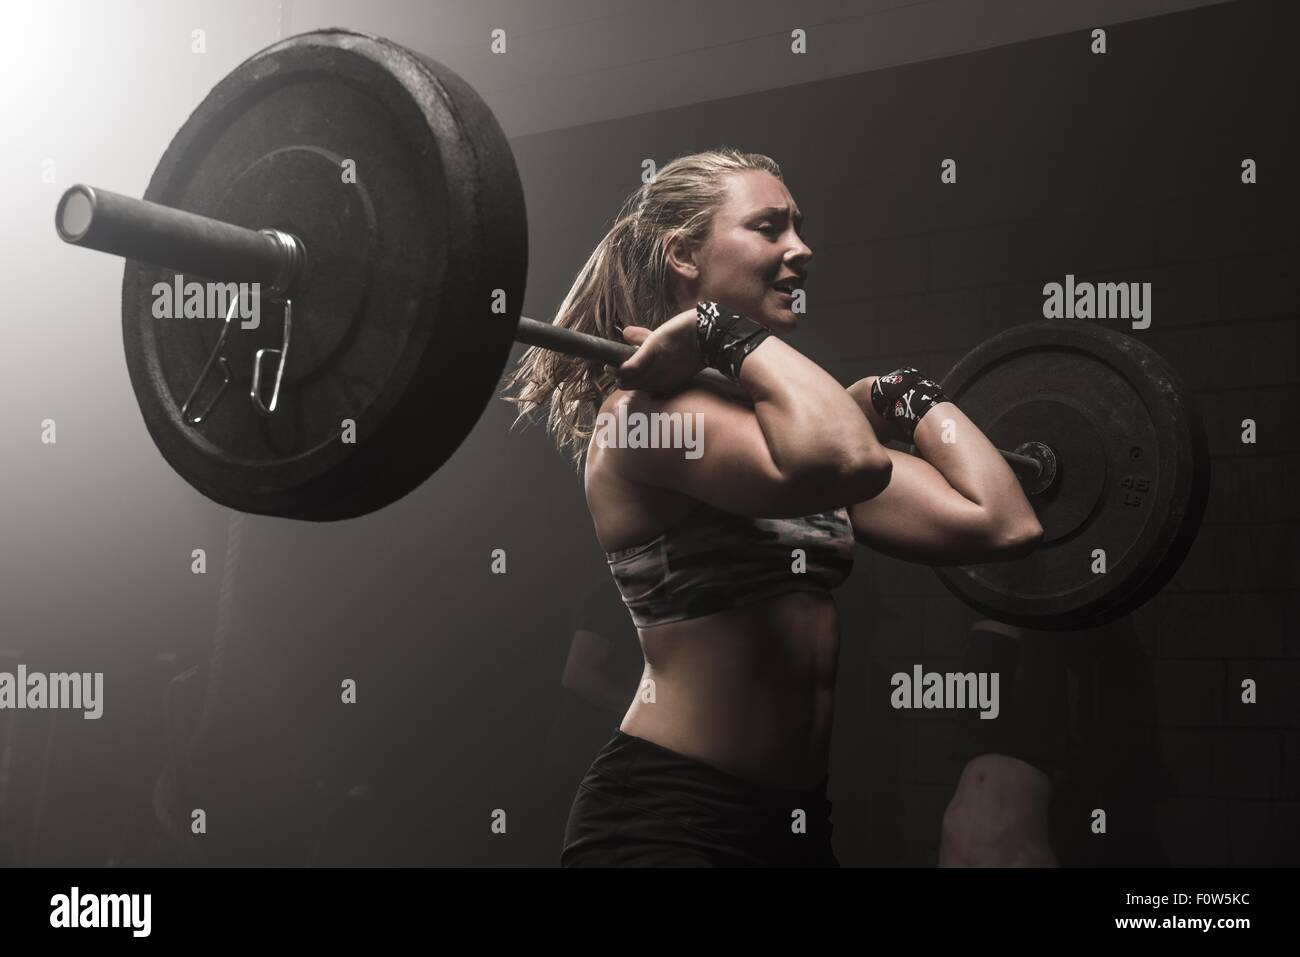 Young woman lifting barbell - Stock Image